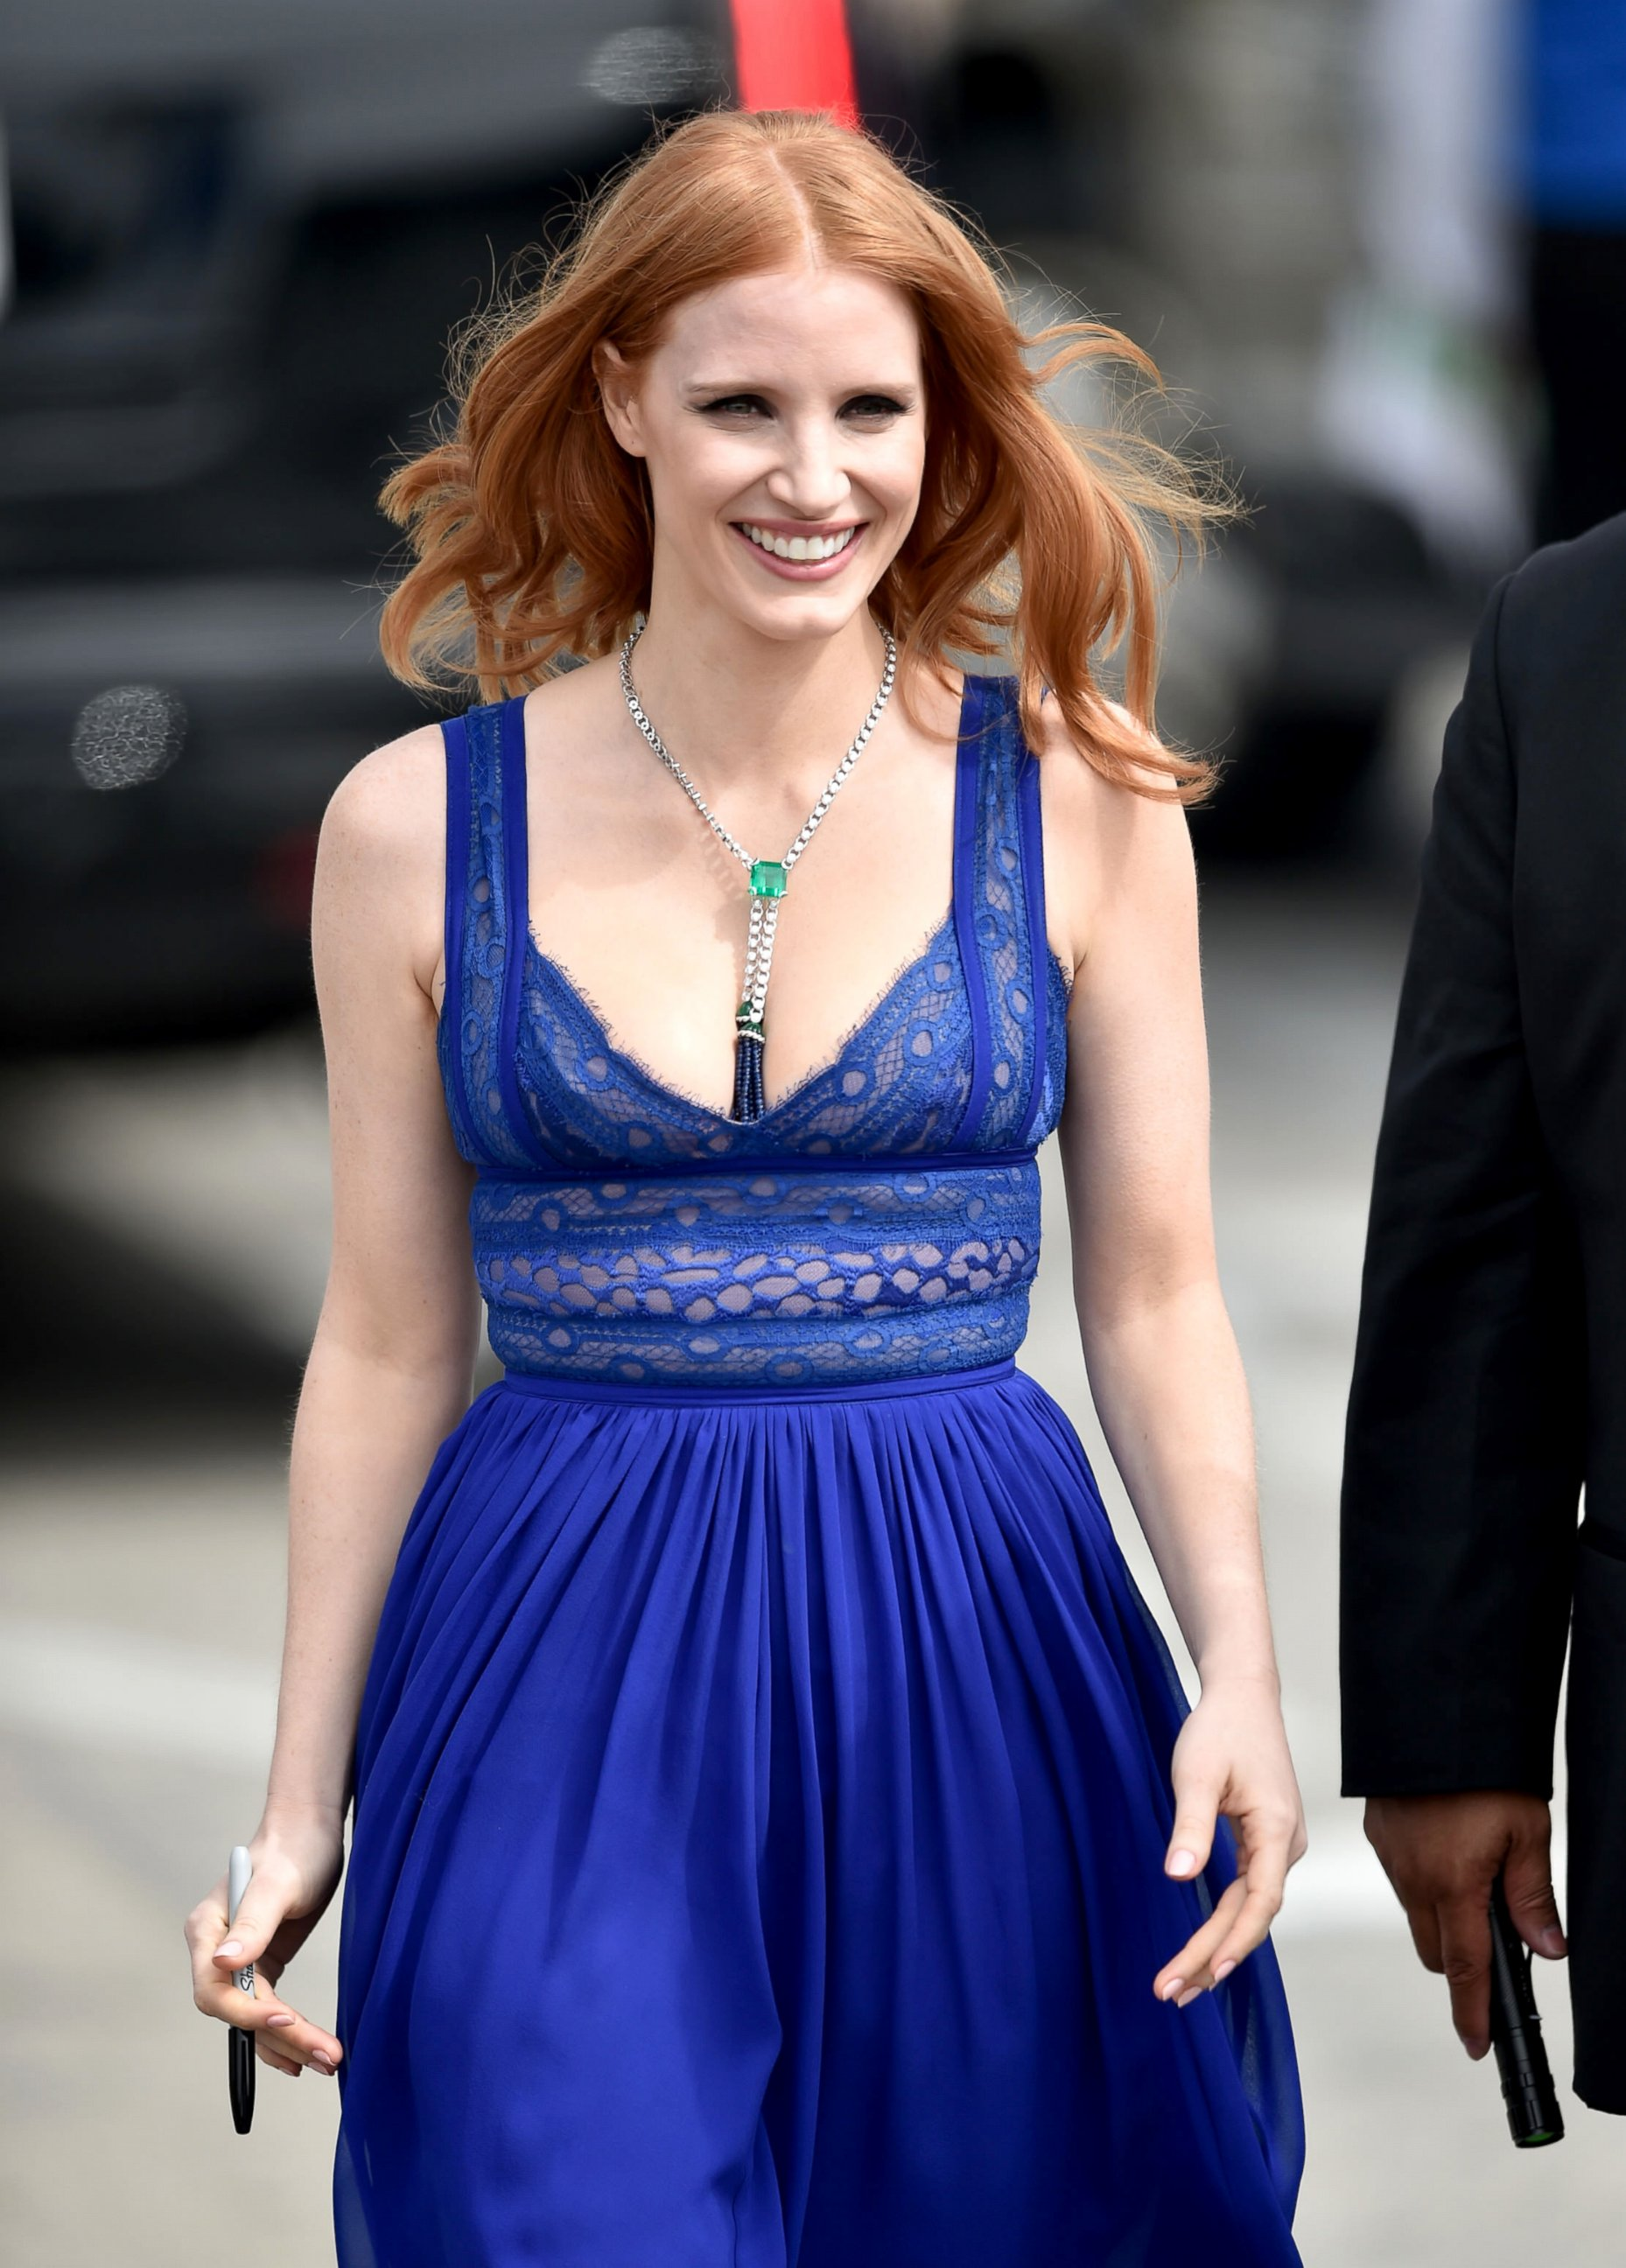 Jessica Chastain Videos at ABC News Video Archive at ... Jessica Chastain